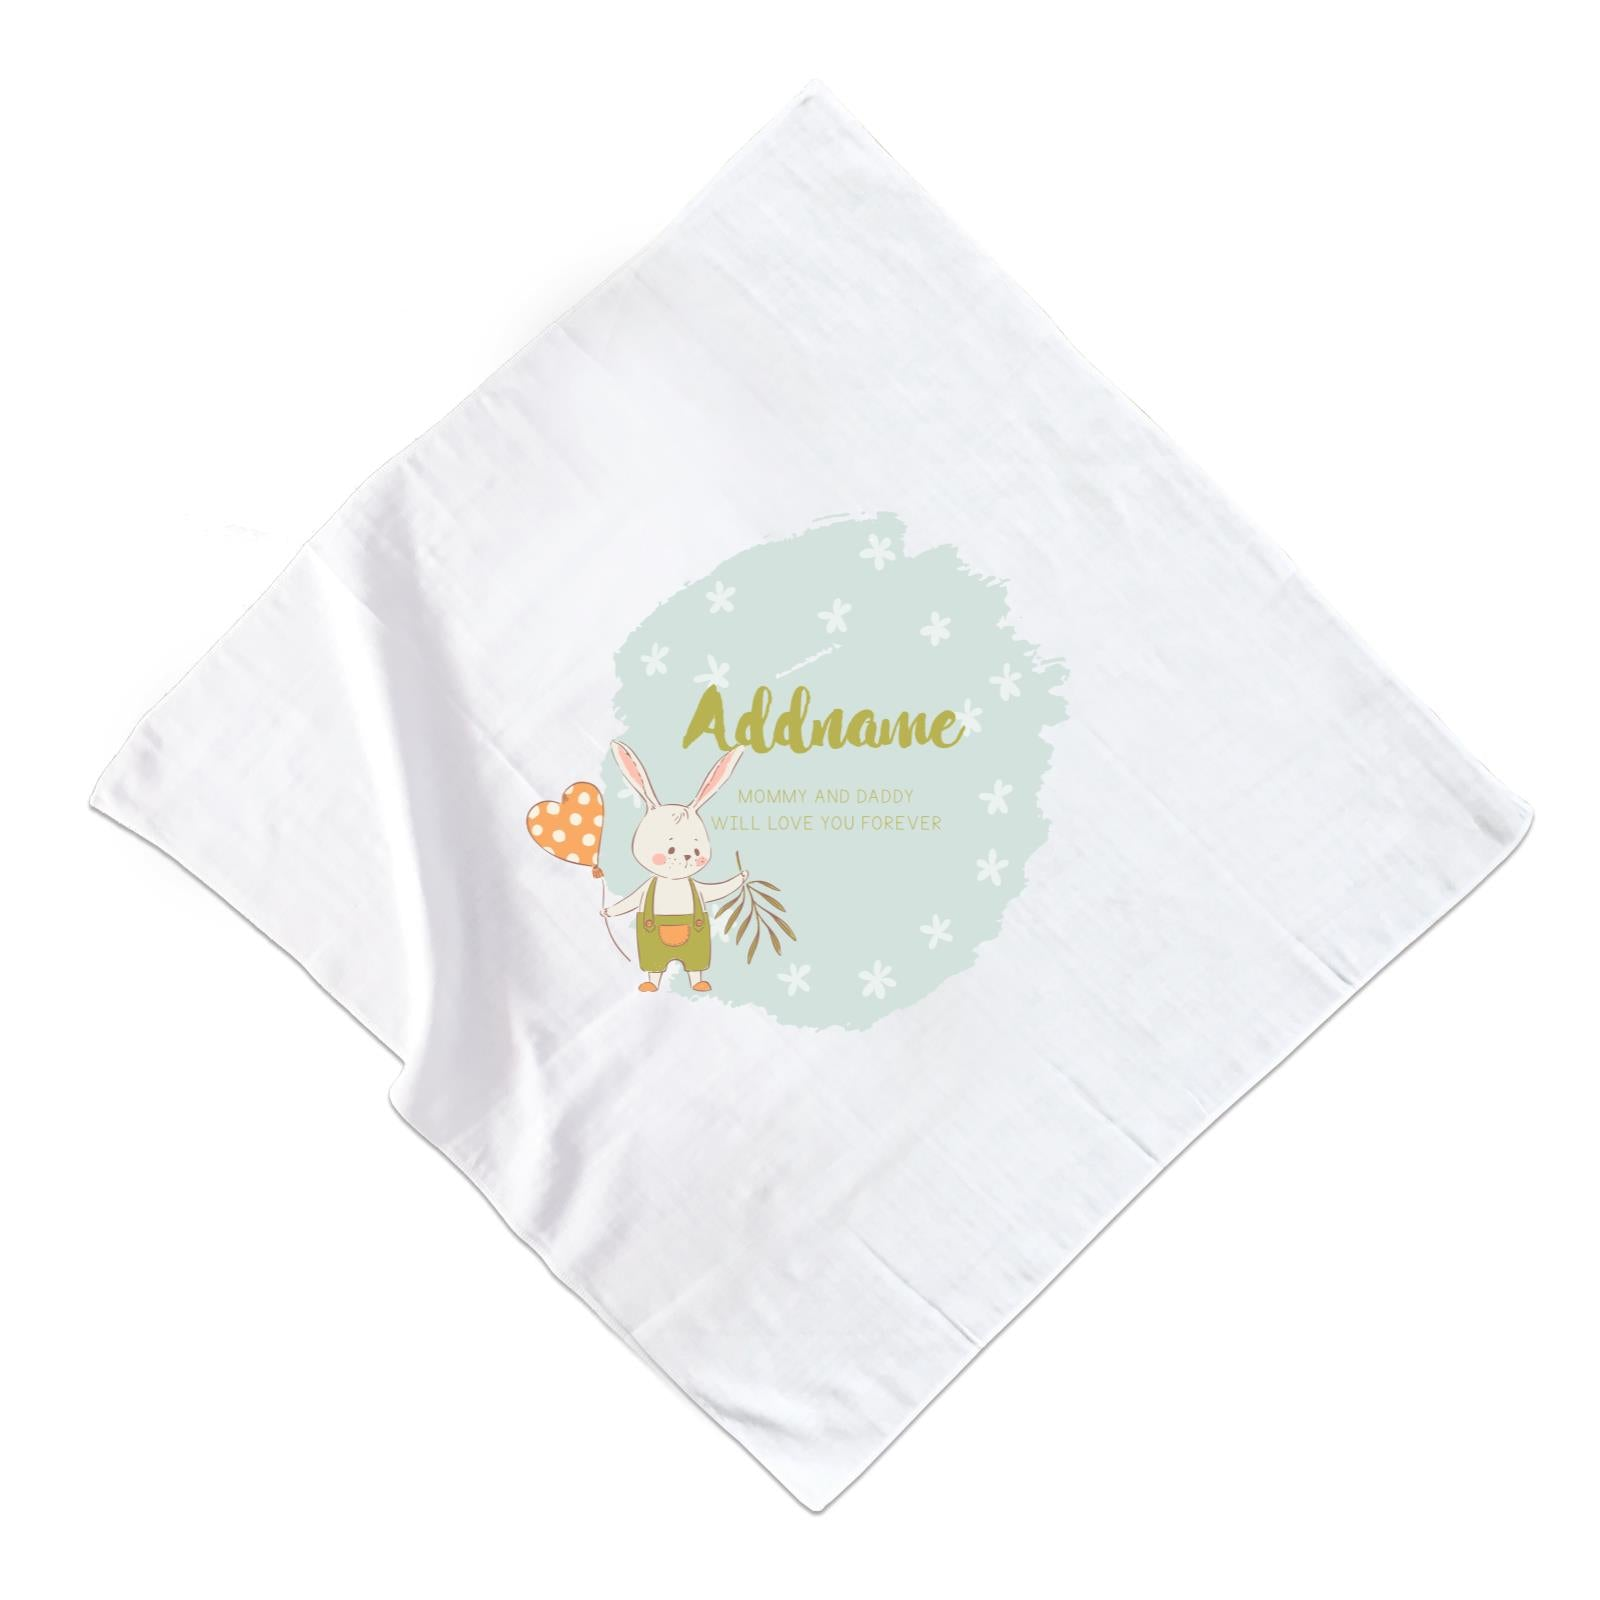 Cute Boy Rabbit with Heart Balloon Personalizable with Name and Text Muslin Square